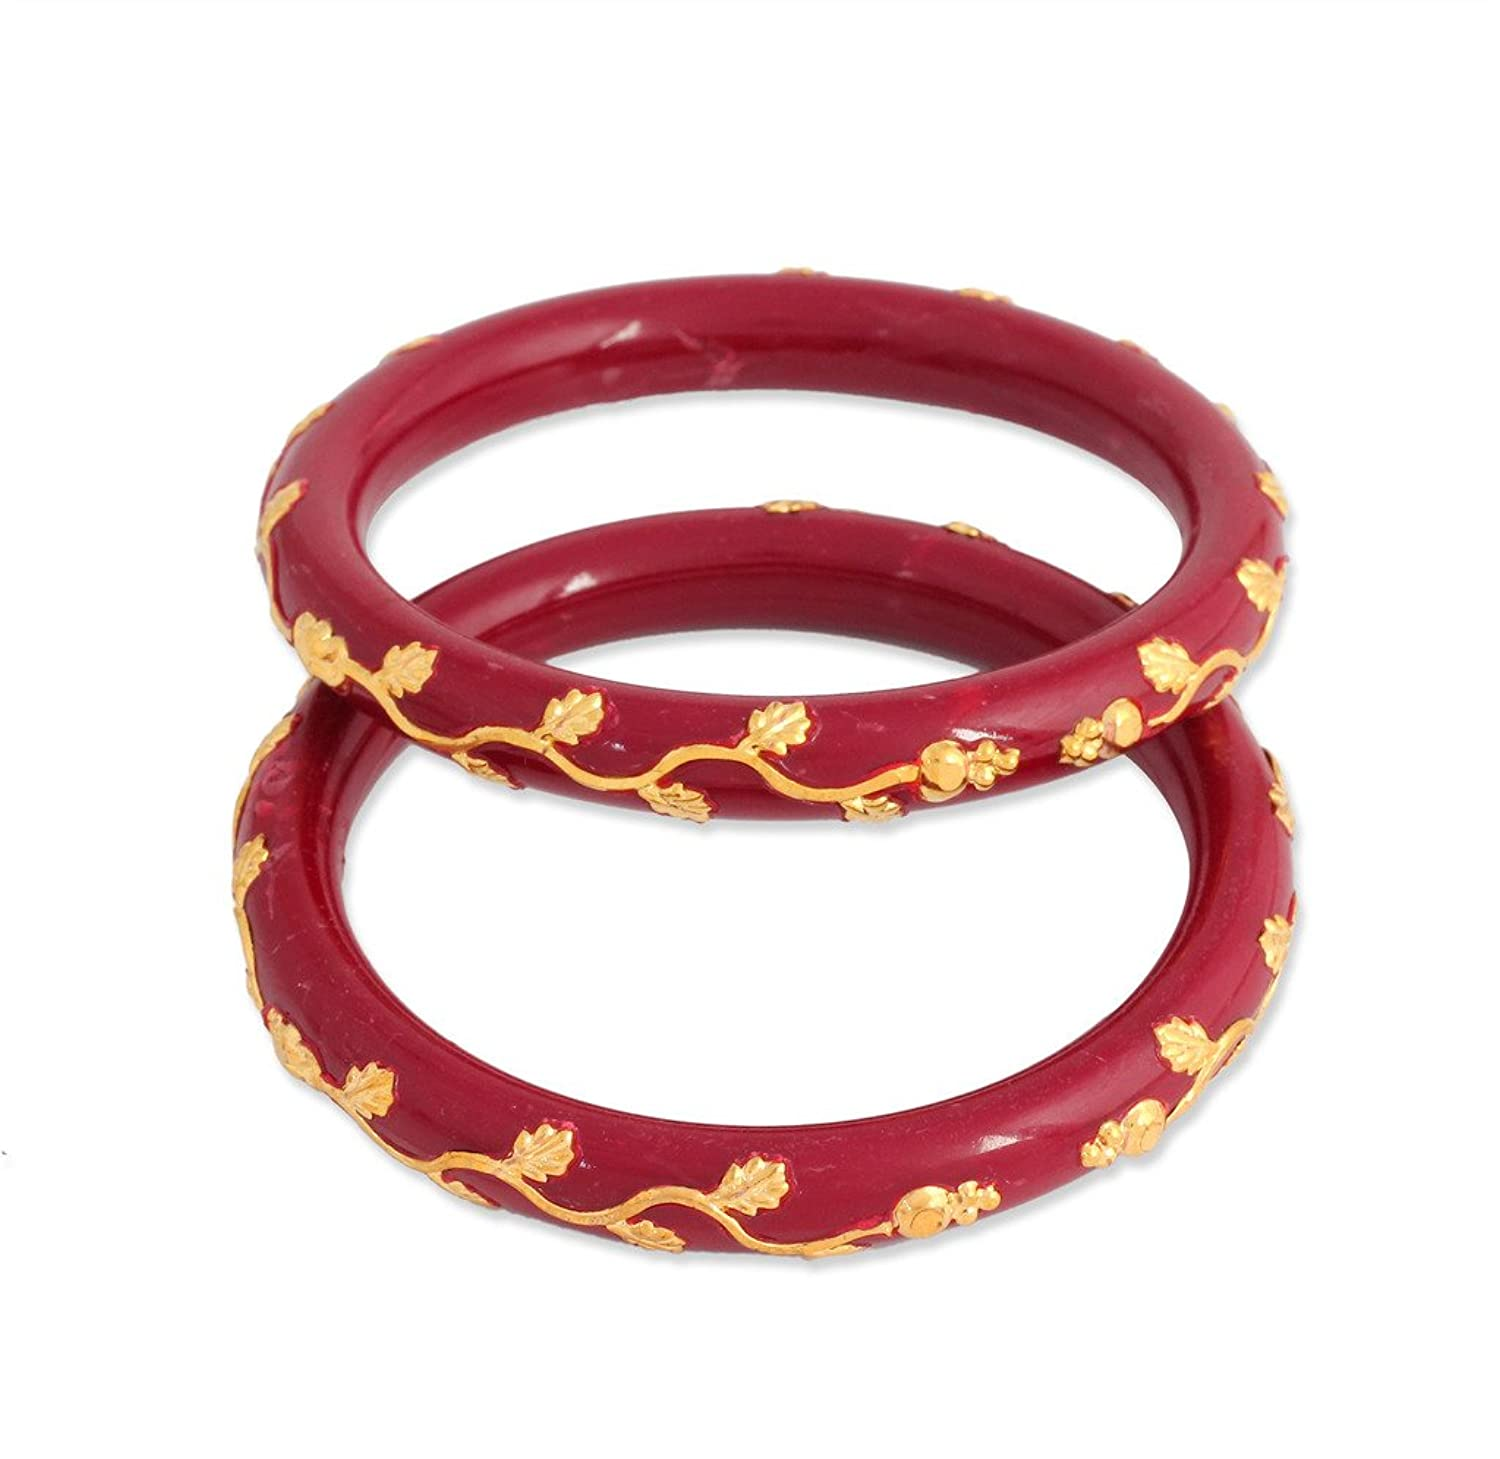 bangles two contrast jewellery acrylic wood bright bangle htm seasalt tone fit accessories resin